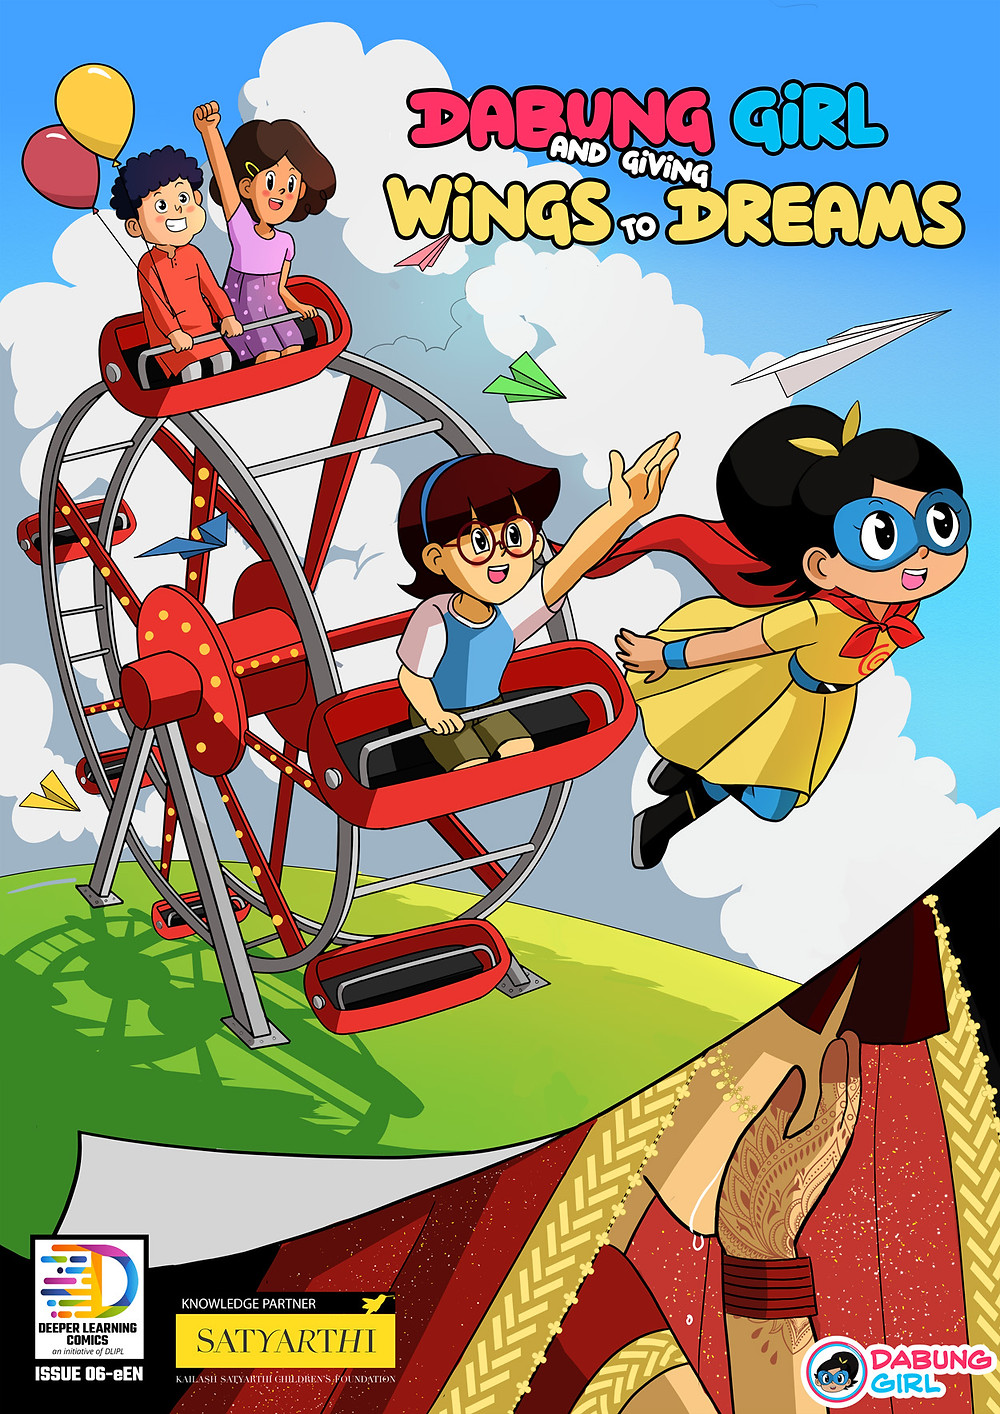 Dabung Girl and Giving Wings to Dreams